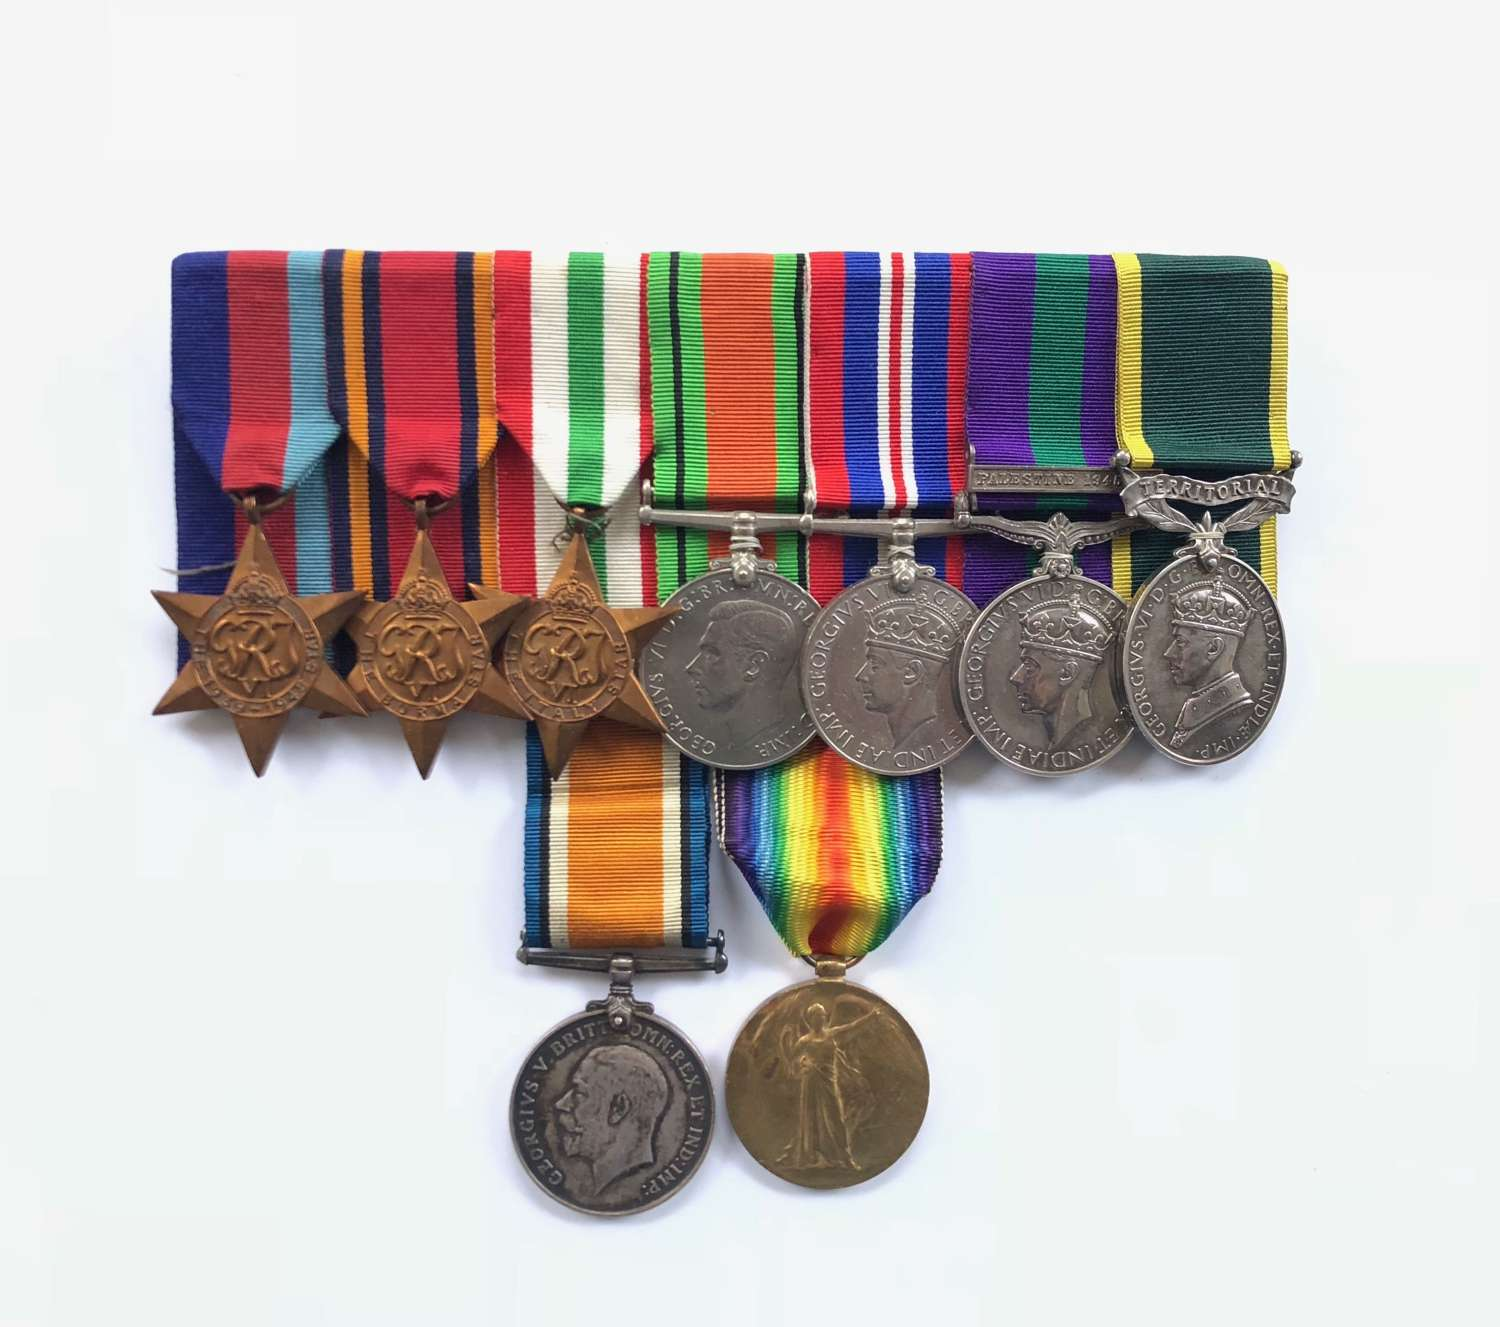 WW2 Royal Corps of Signals Officer's Group of 7 Medals.